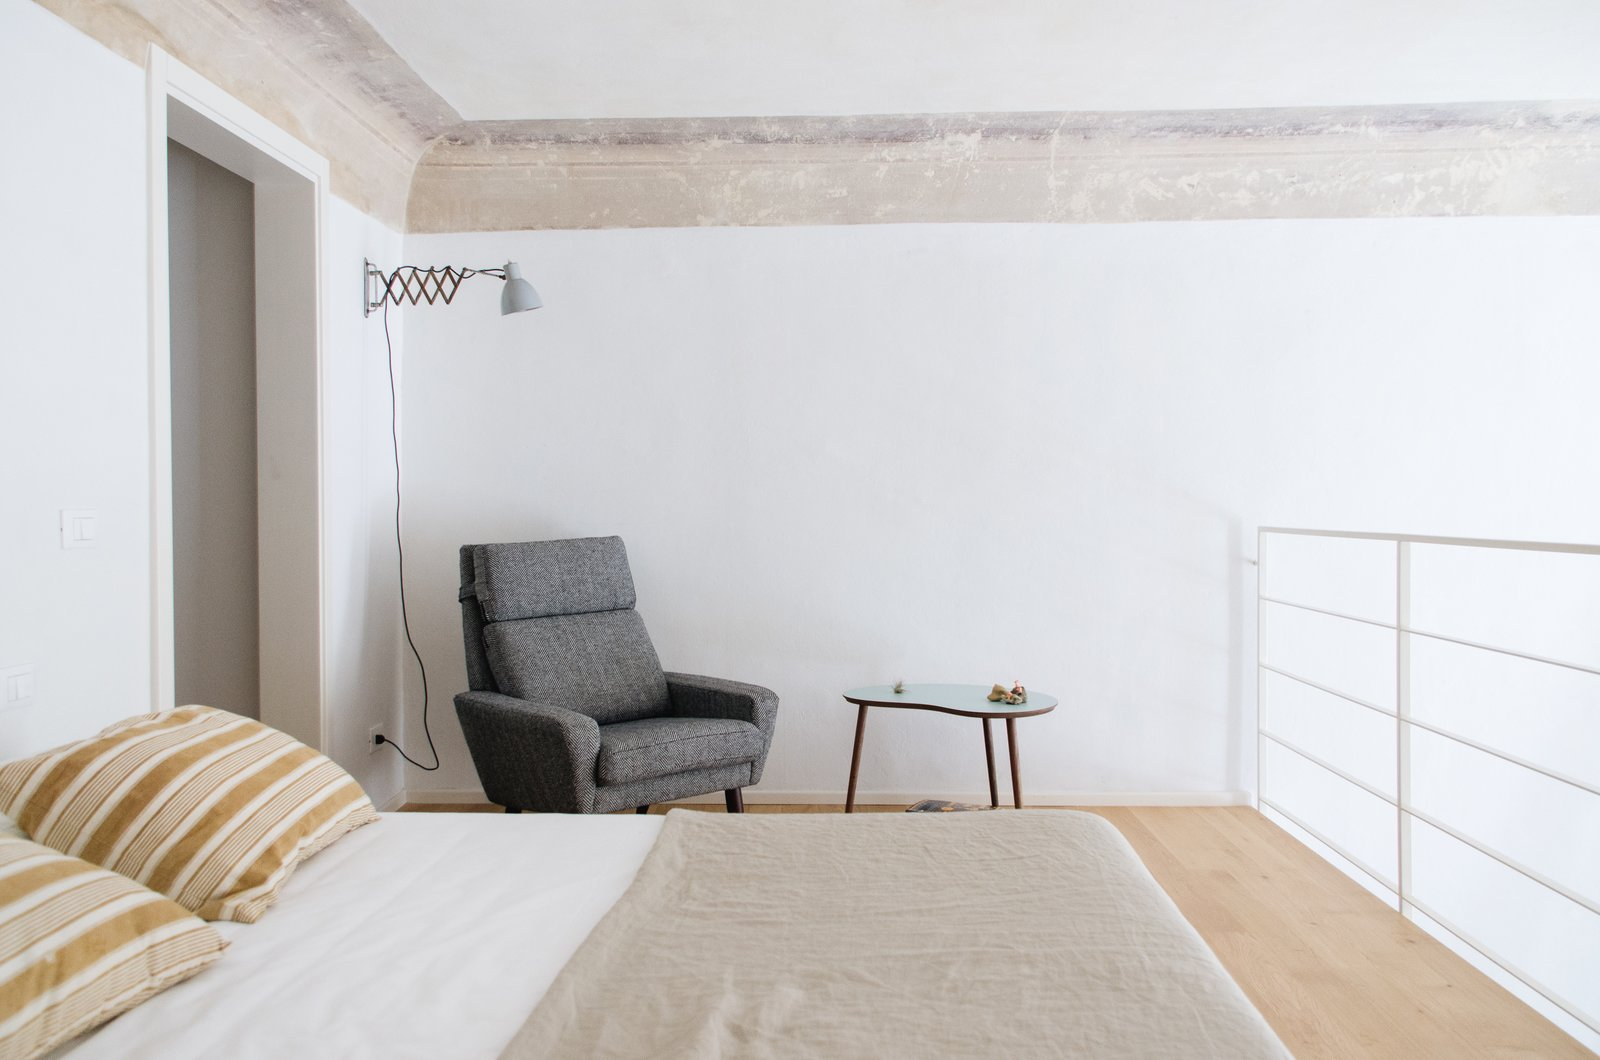 Bedroom, Bed, Chair, Wall Lighting, Light Hardwood Floor, and Night Stands Midcentury modern mixes well within the context of the 16th-century palazzo.  Photo 5 of 20 in A 16th-Century Florentine Palazzo Is Transformed Into an Artist Residency